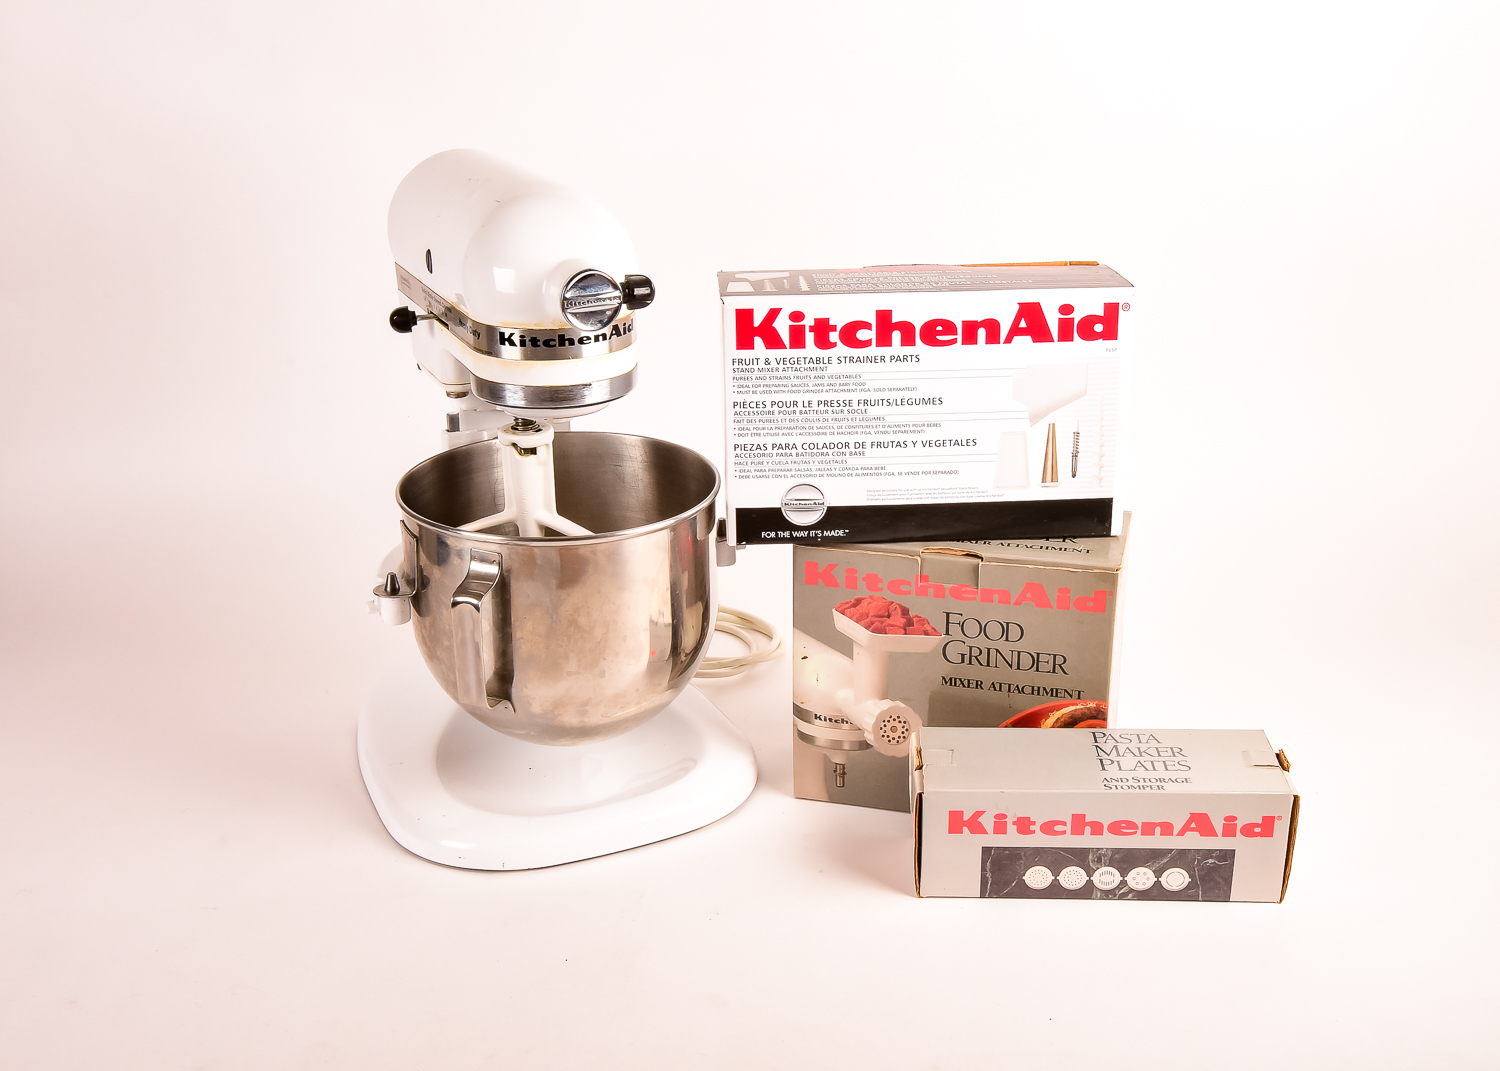 Contemporary Kitchenaid K5ss Attachments Mixer Not Included ...